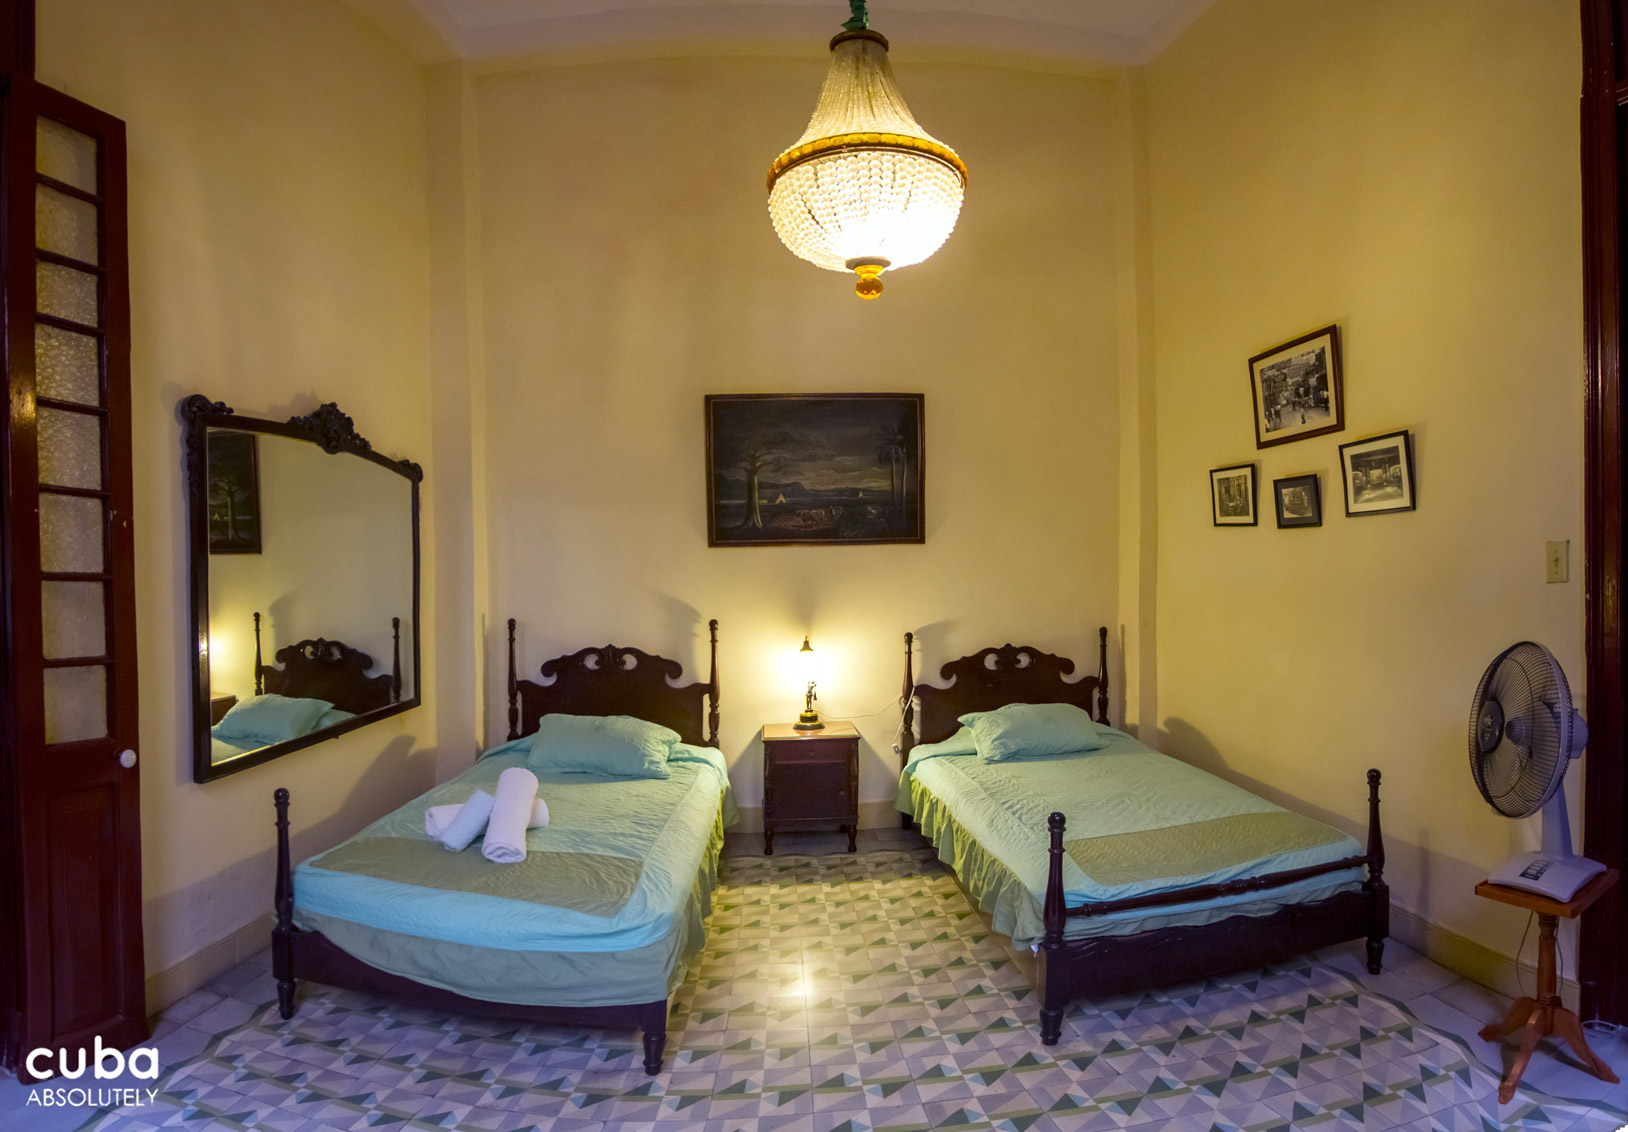 The large bedrooms of Casa 1932 are all elegant, but the newest room, although the smallest, was my favourite for the attention to detail and atmosphere. Havana, Cuba